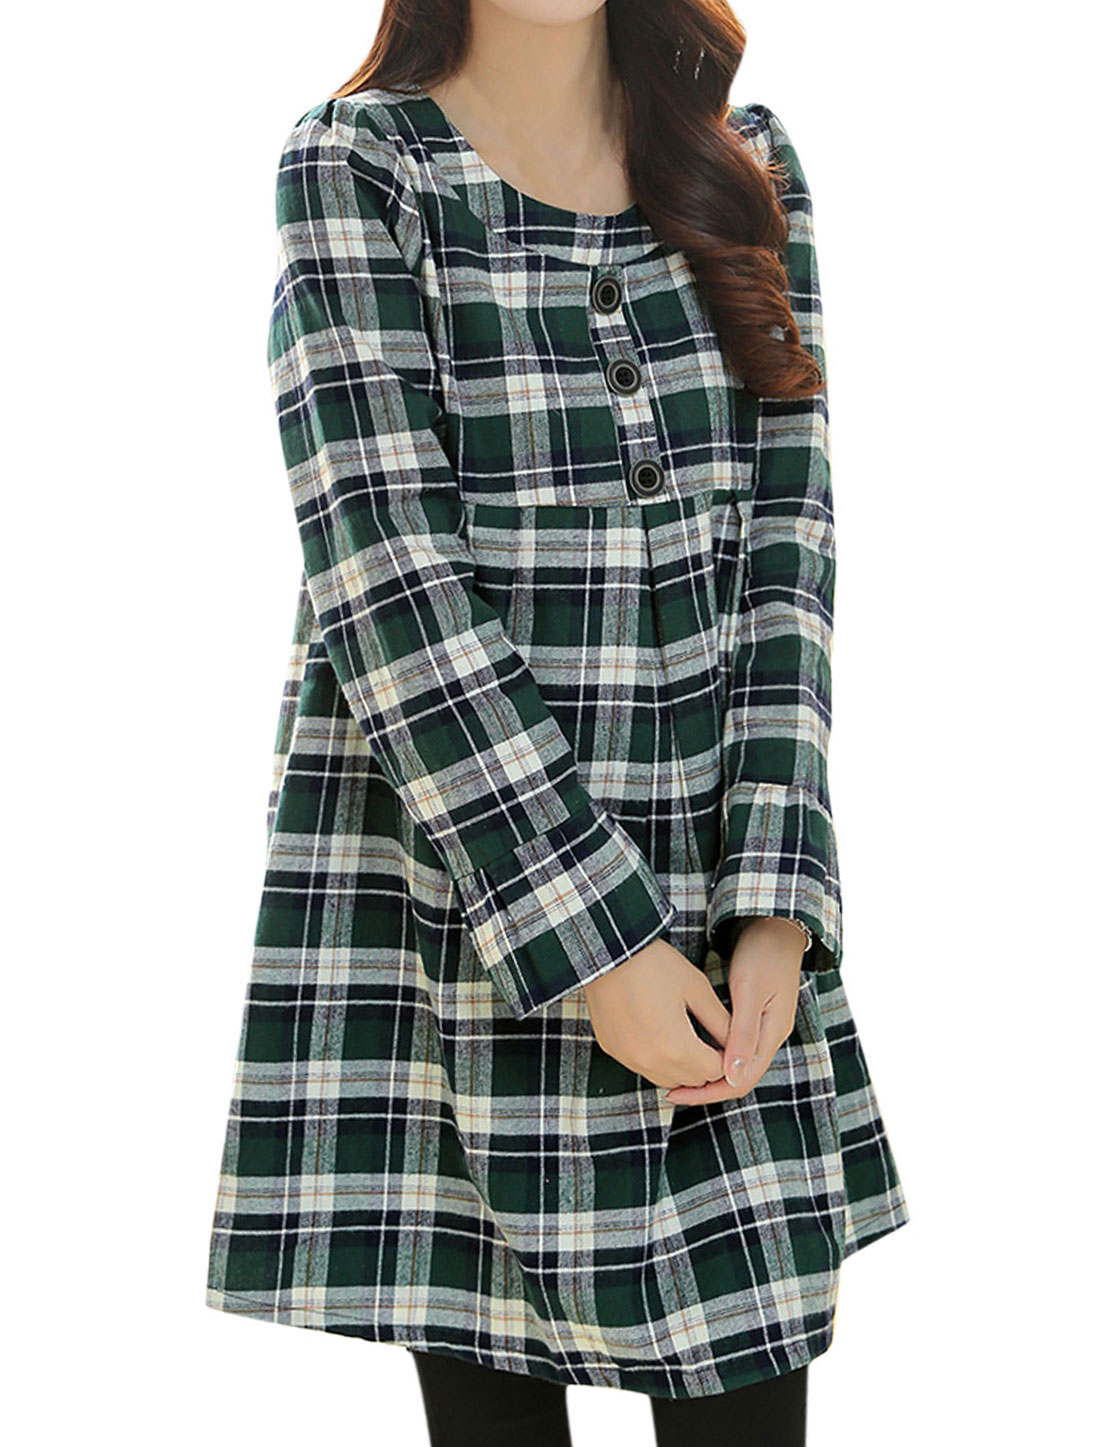 Maternity Plaids Pattern Buttons Decor Front Short Dress Green Navy Blue M